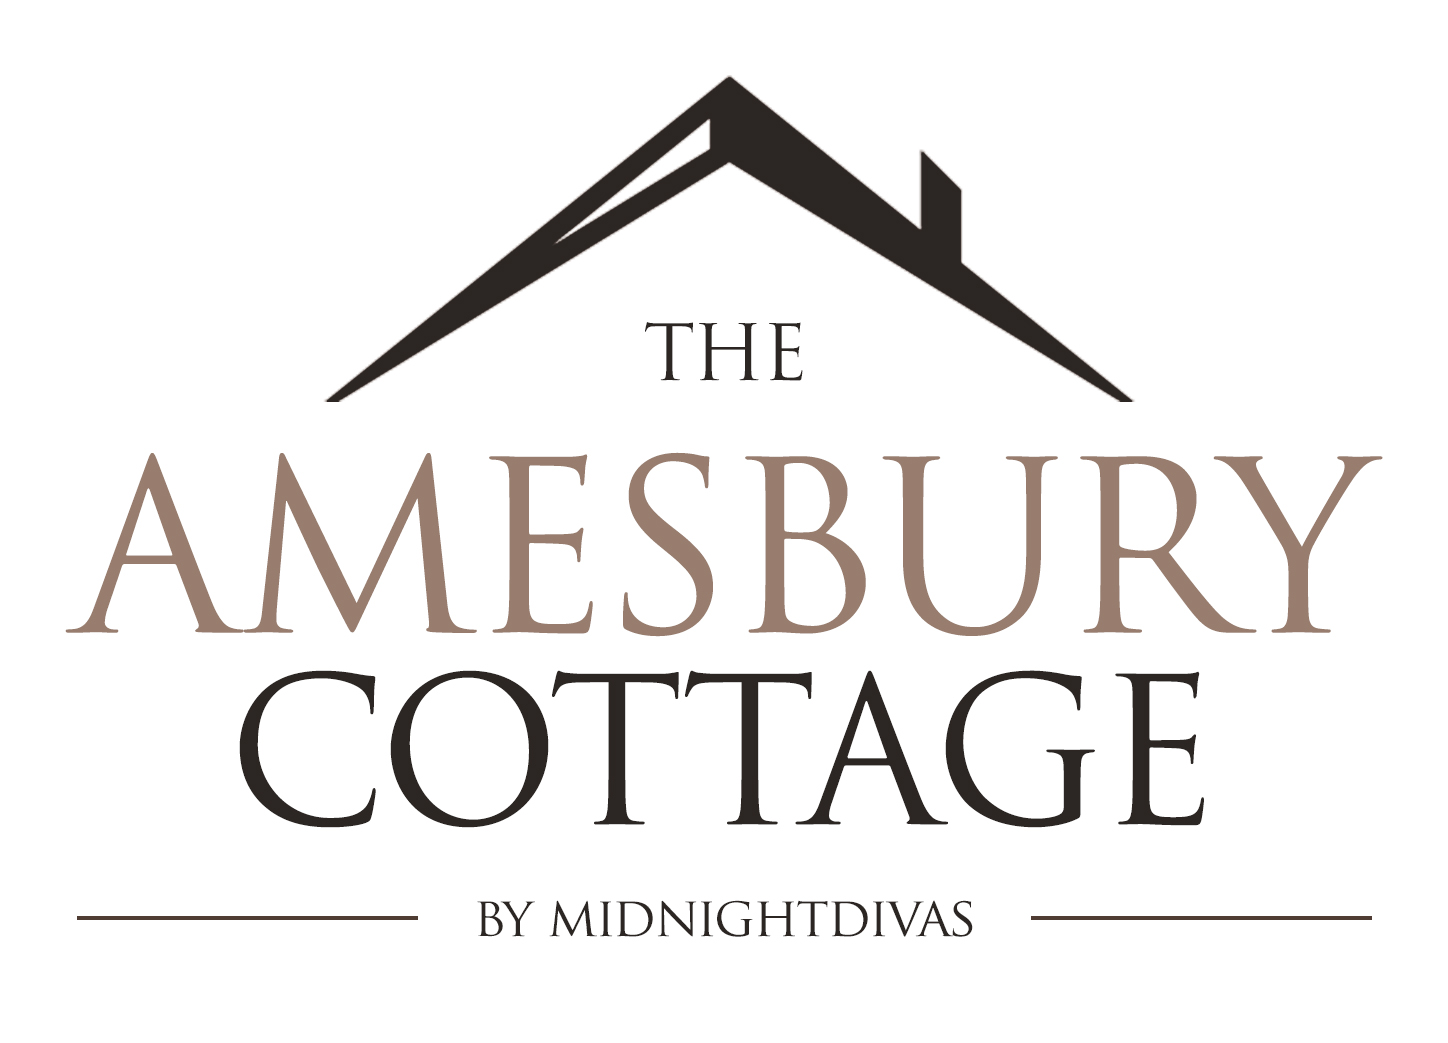 Amesbury Cottage